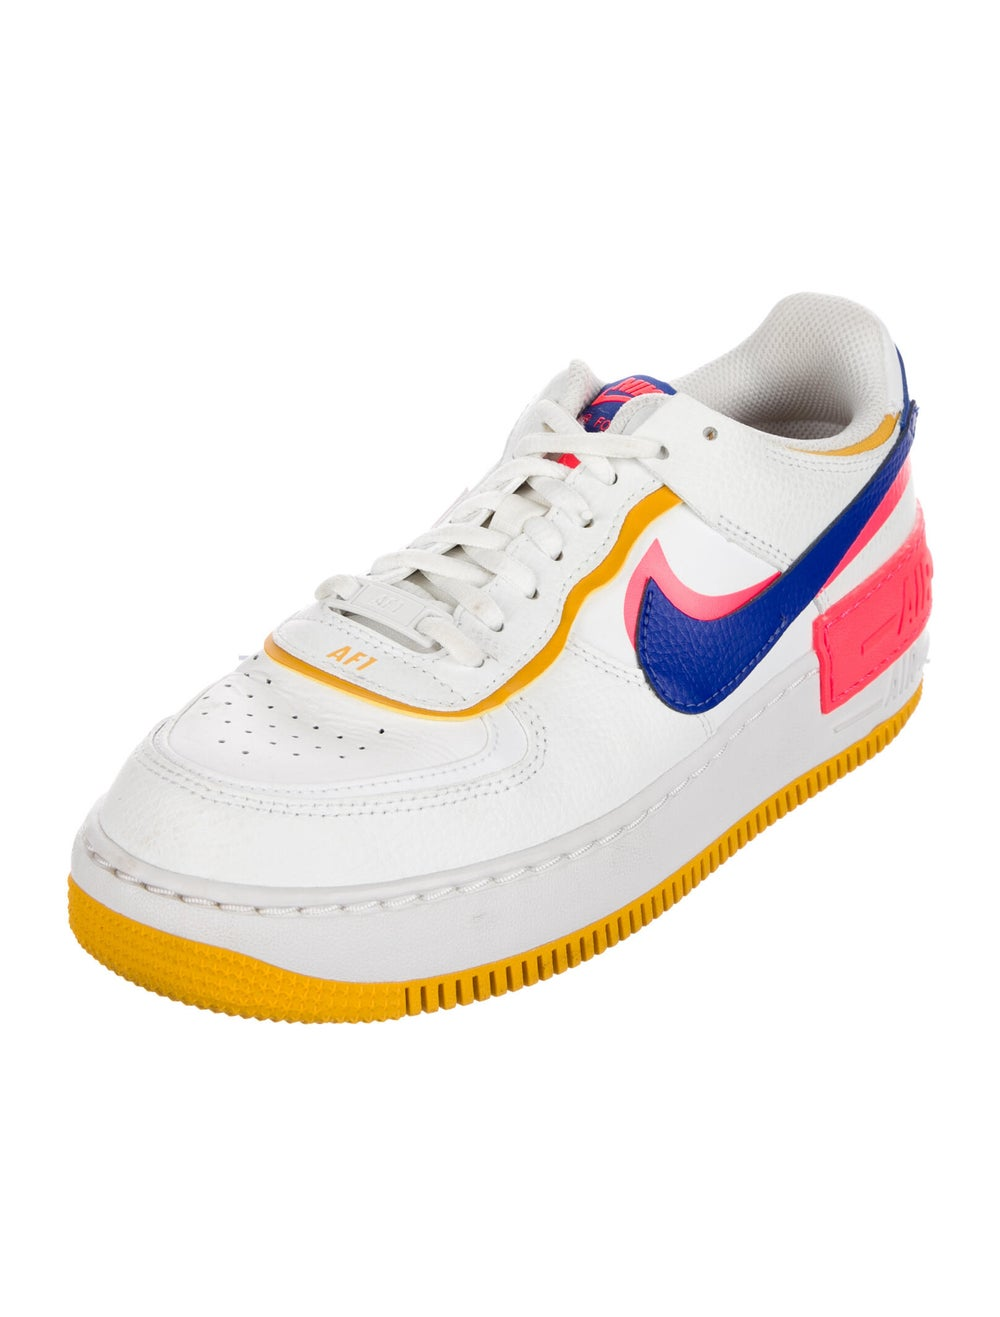 Nike Air Force 1 Sneakers White - image 2